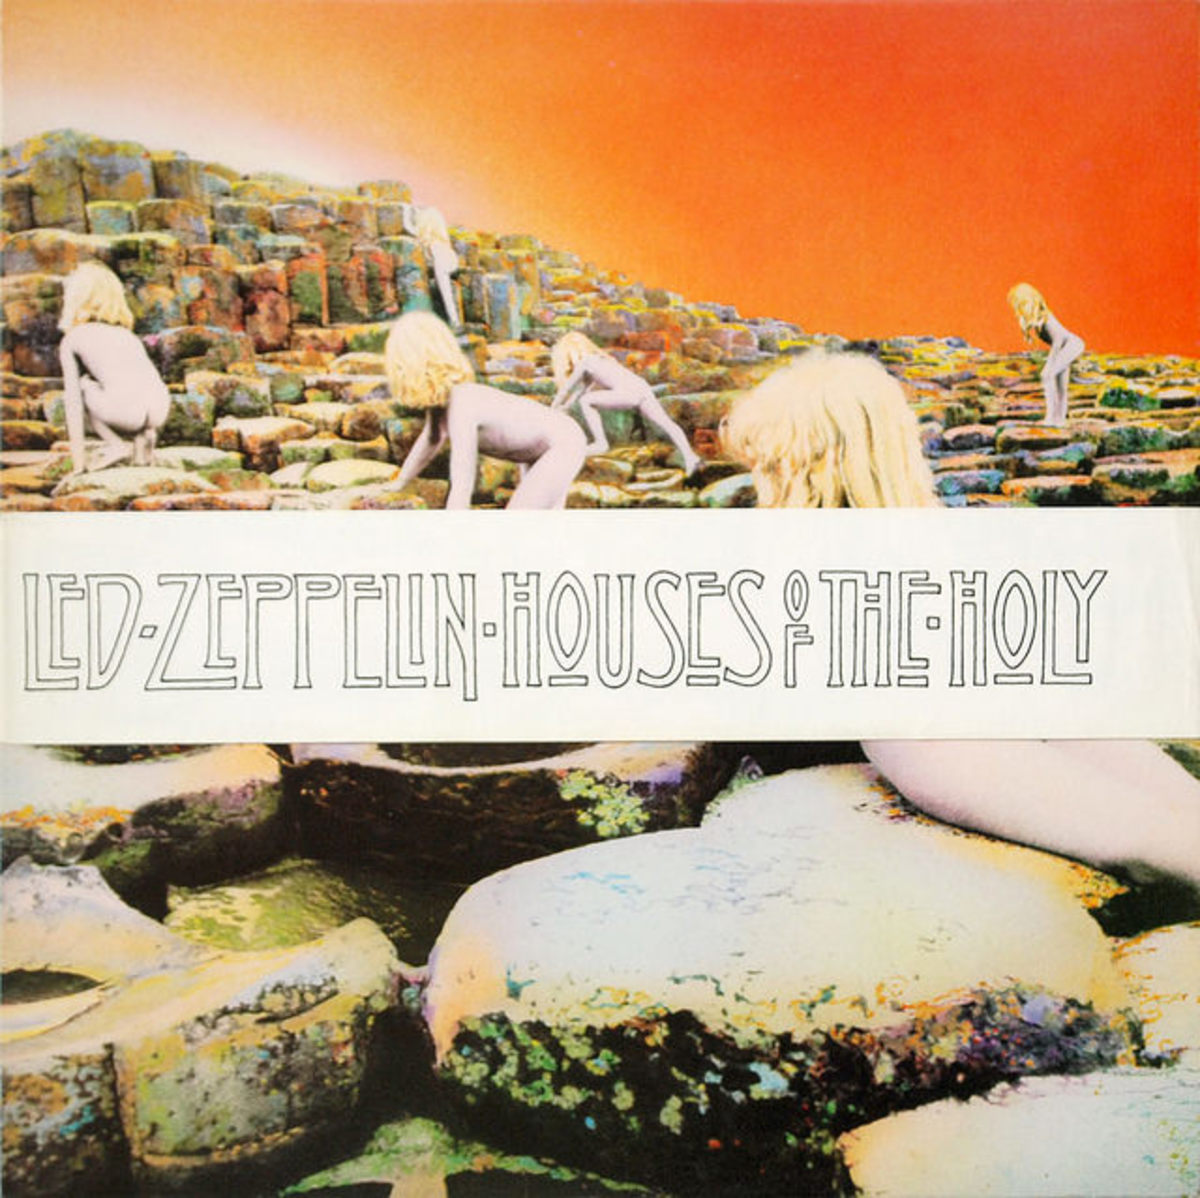 "Led Zeppelin ""Houses Of The Holy"" Atlantic Records K50014 12"" LP UK Pressing (1973) Album Cover Art by Hipgnosis"